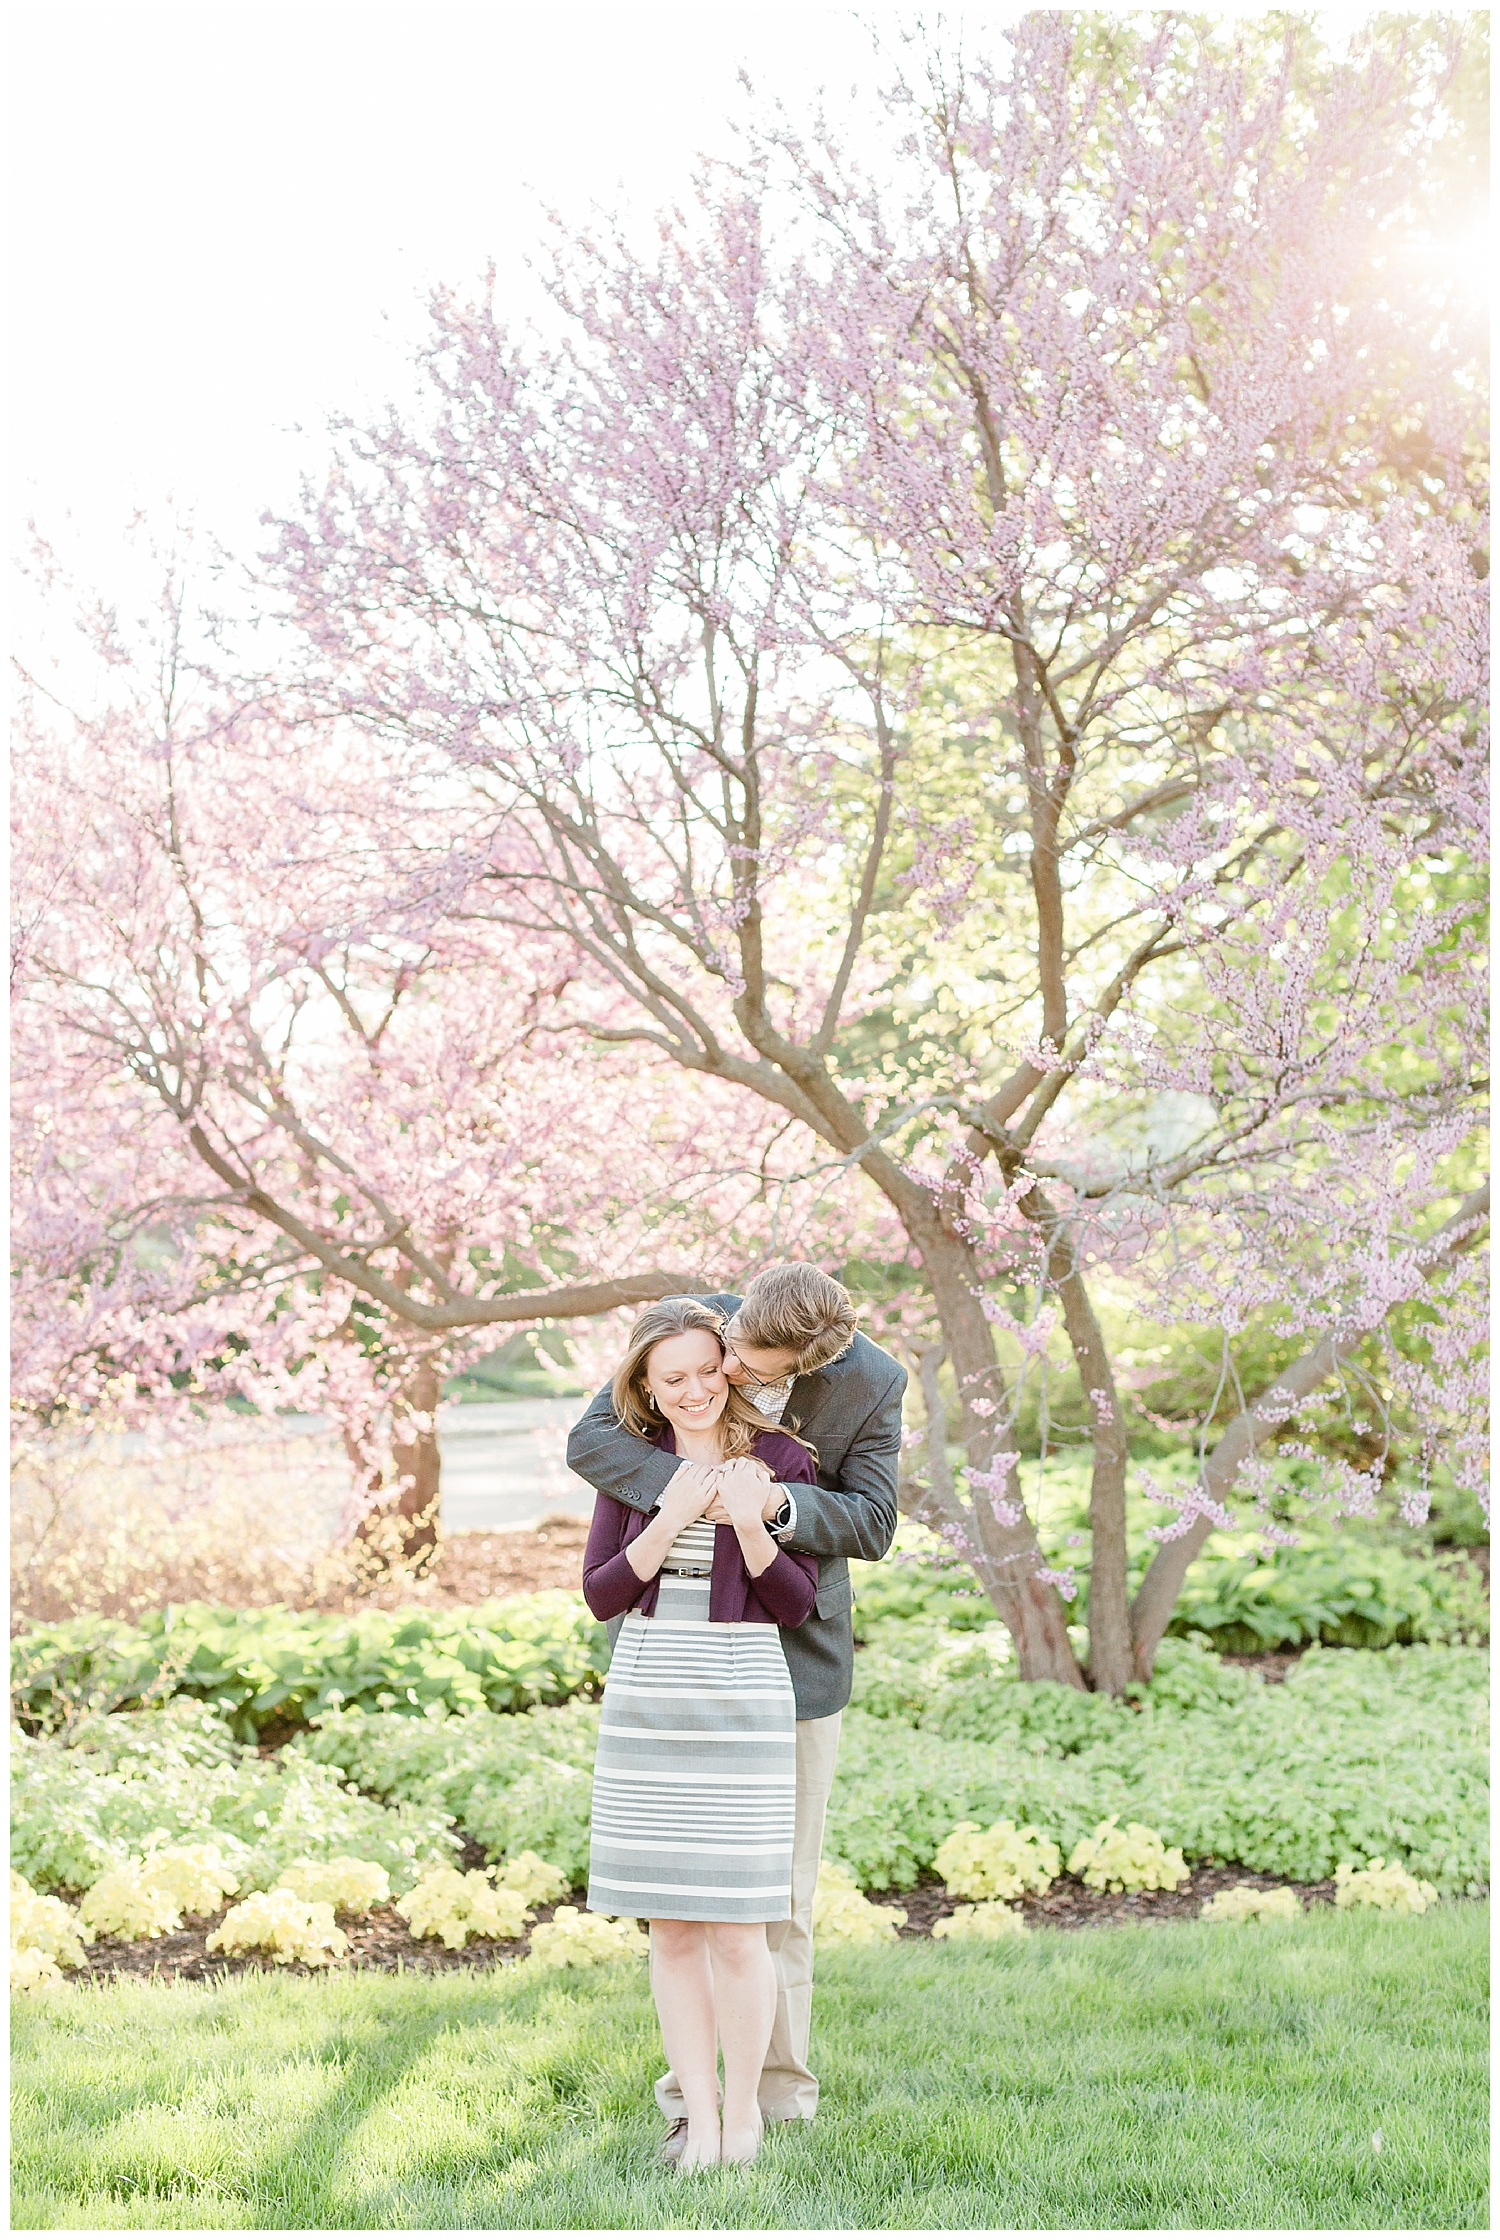 morton-arboretum-lisle-wedding-photographer-summer-engagement-session_0001.jpg